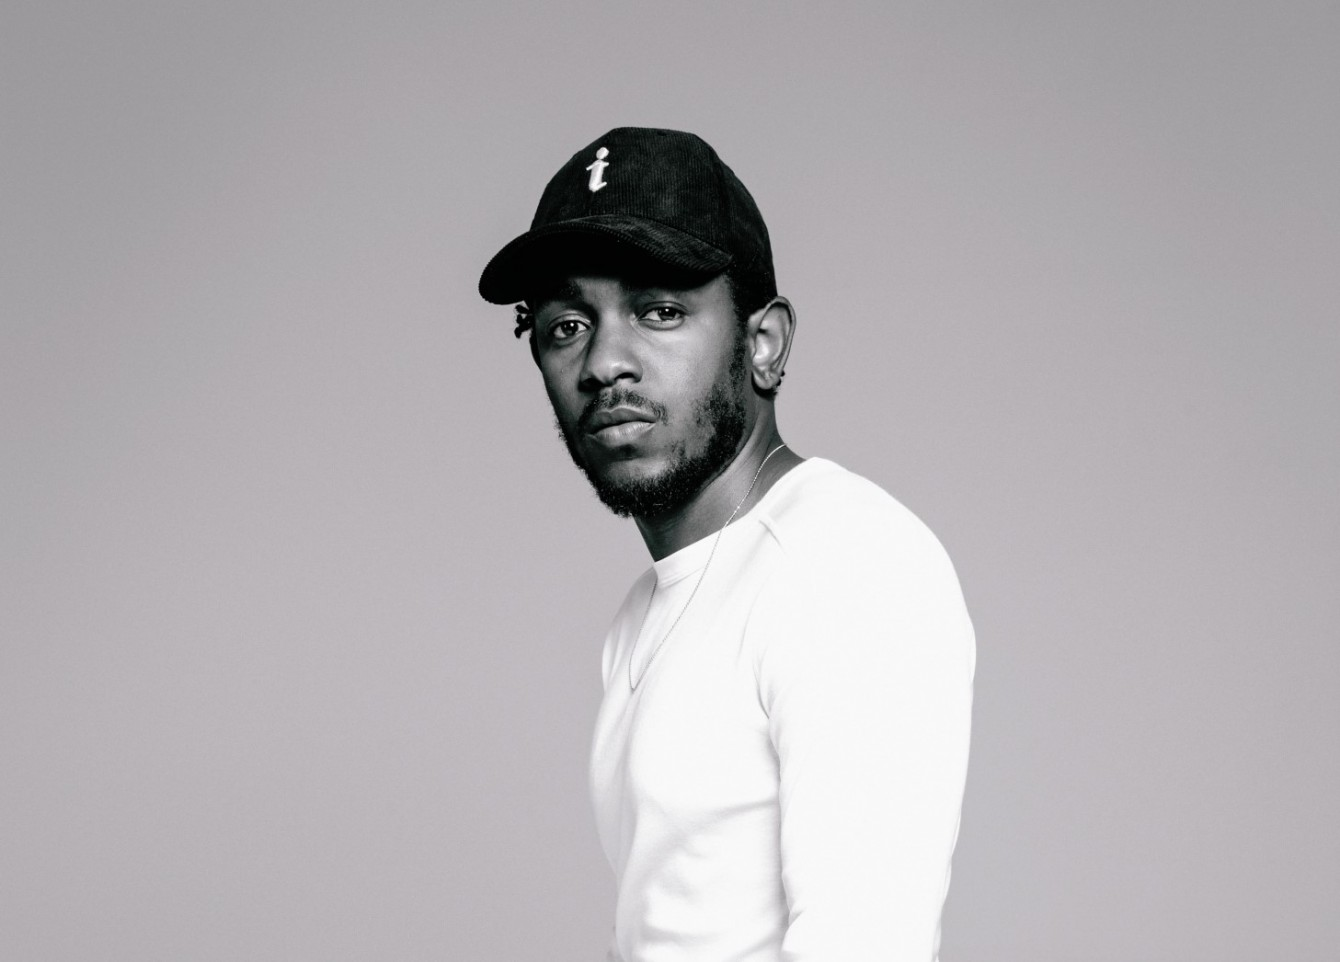 Without Warning: Kendrick Lamar releases surprise album